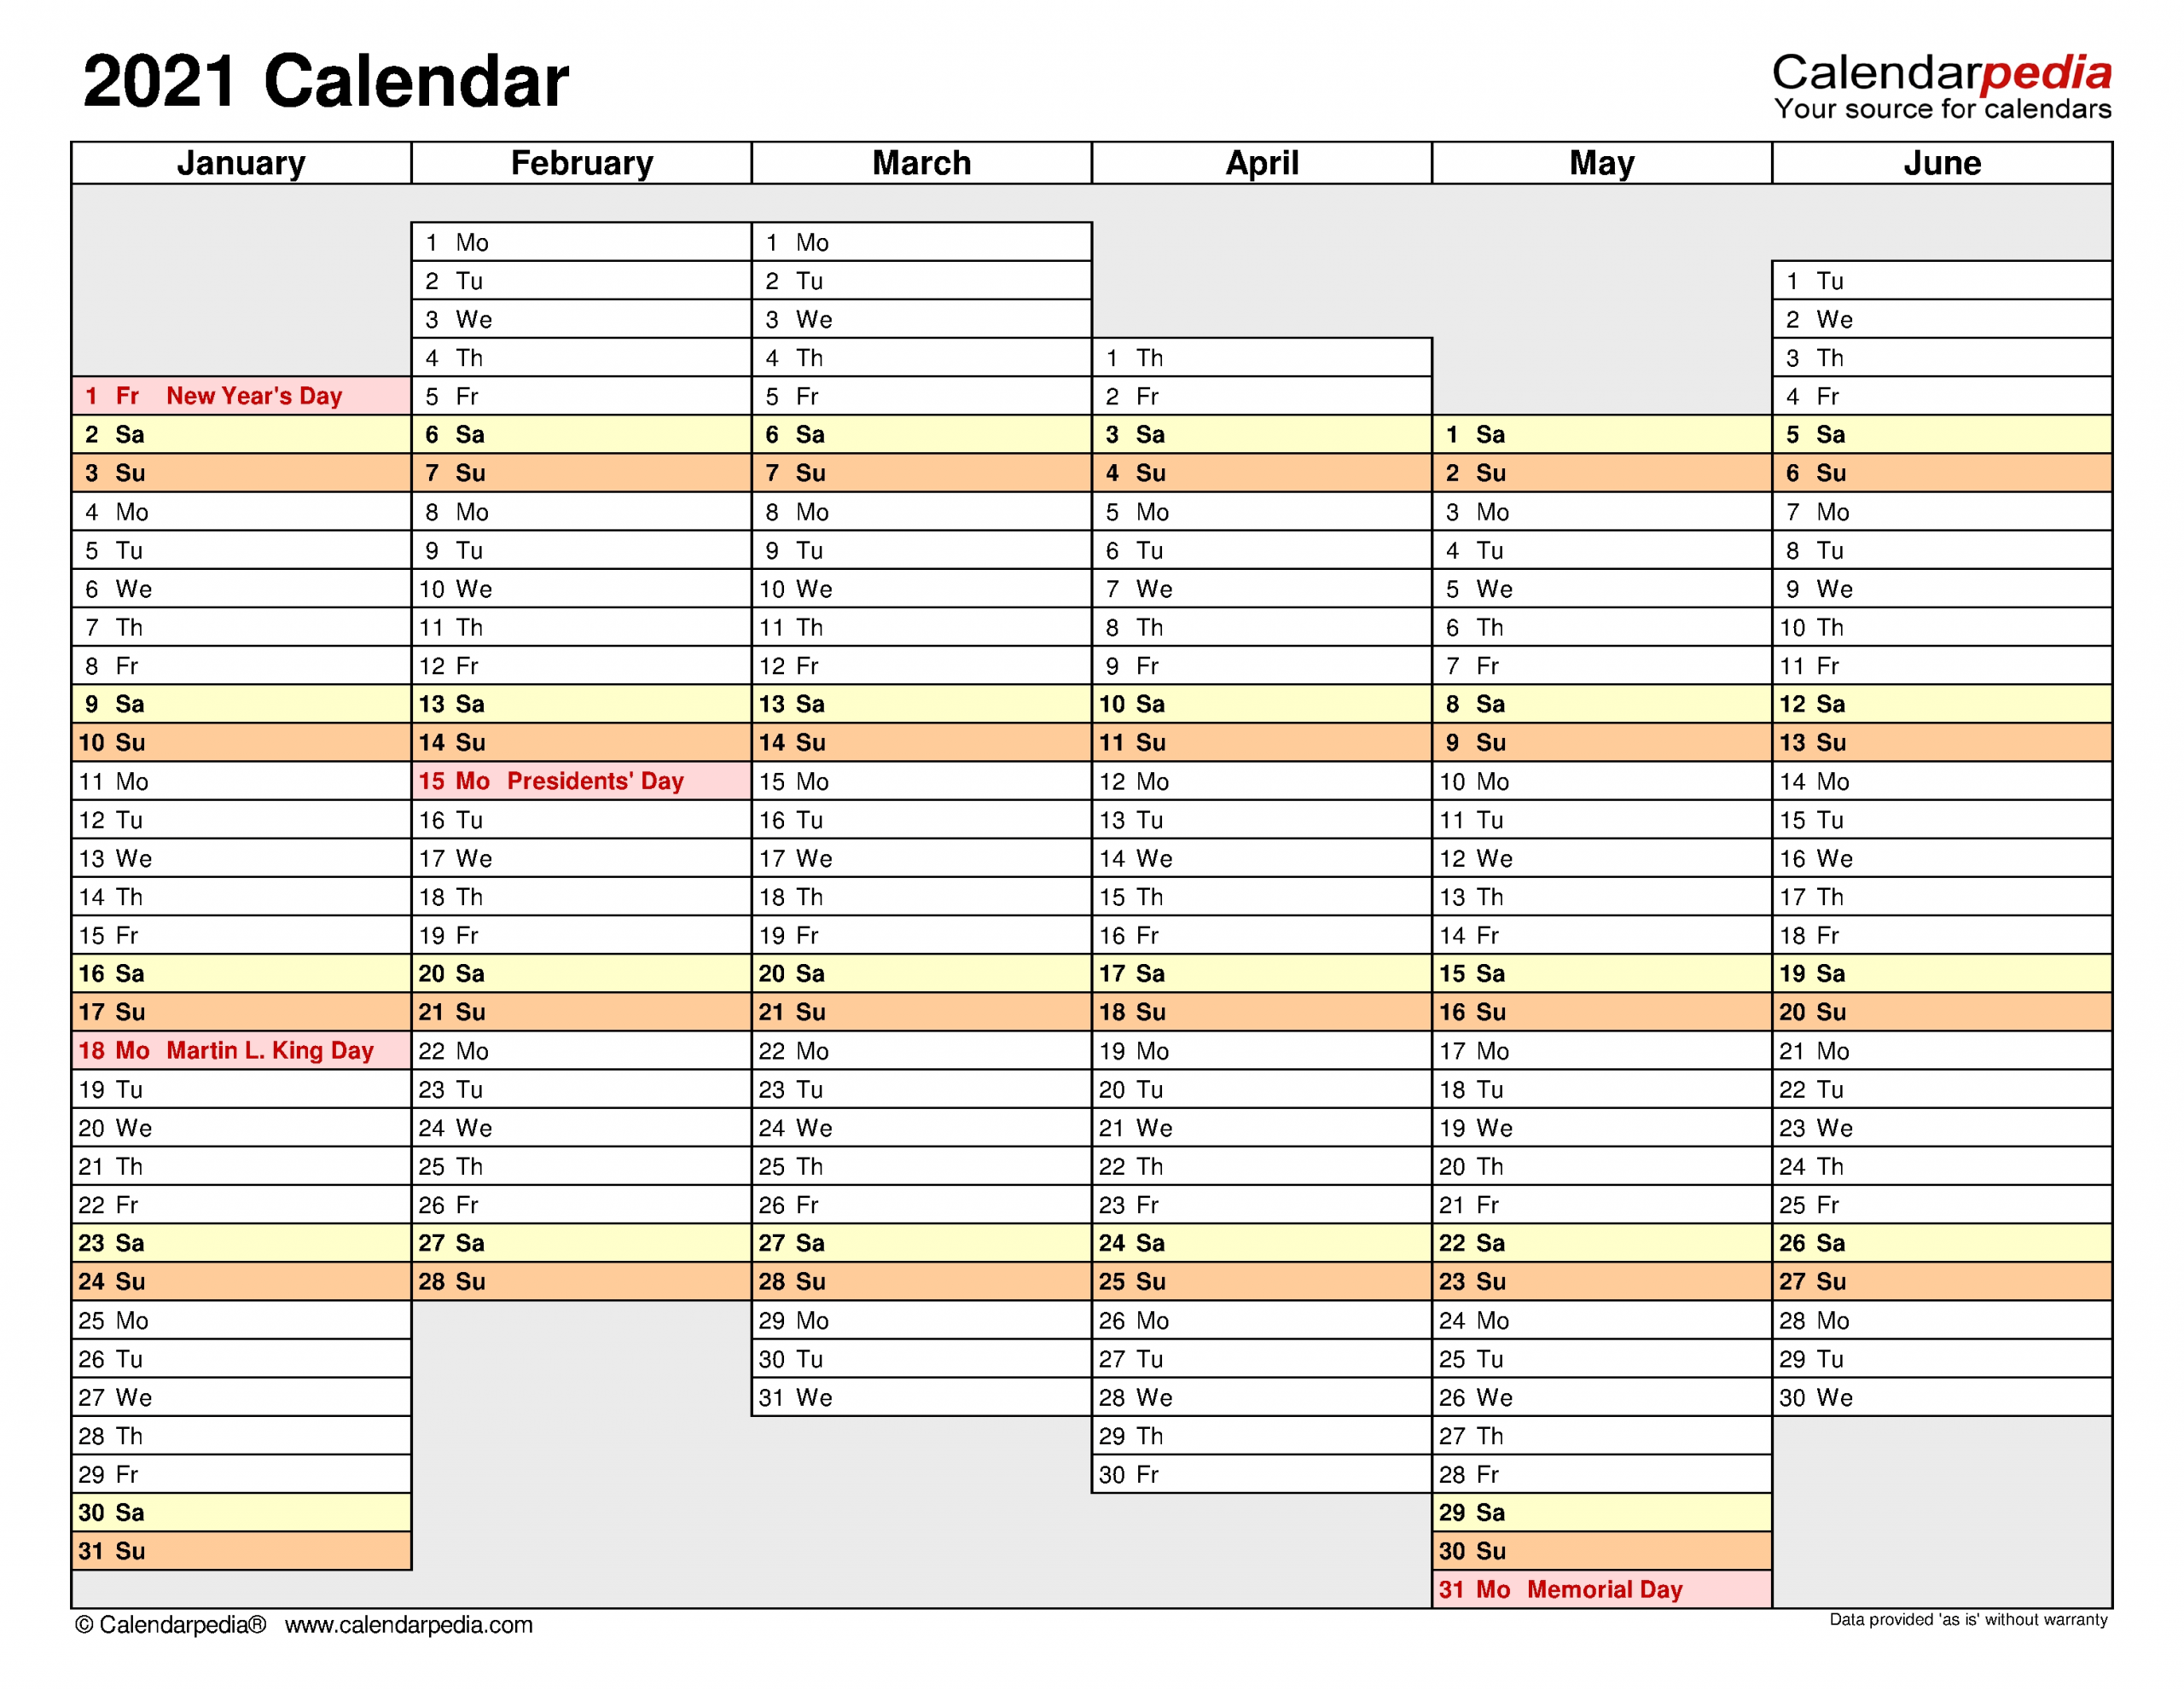 After all, it's just another way to show some excitement for the end of 2020. Microsoft Calendar Templates 2021 2 Page Per Month ...